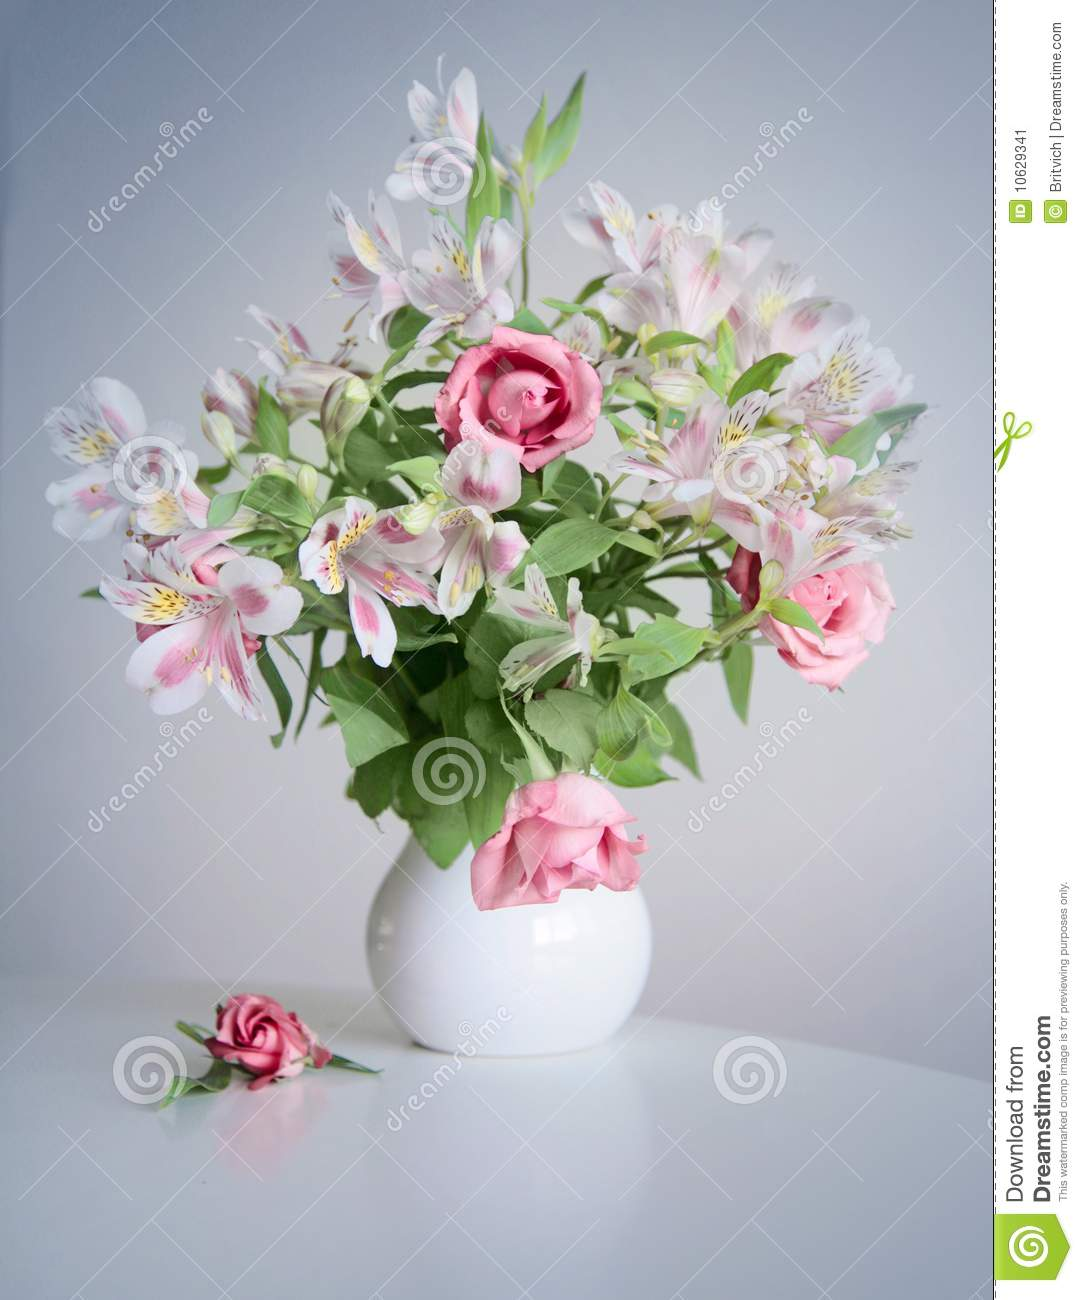 nice flowers stock image  image, Beautiful flower